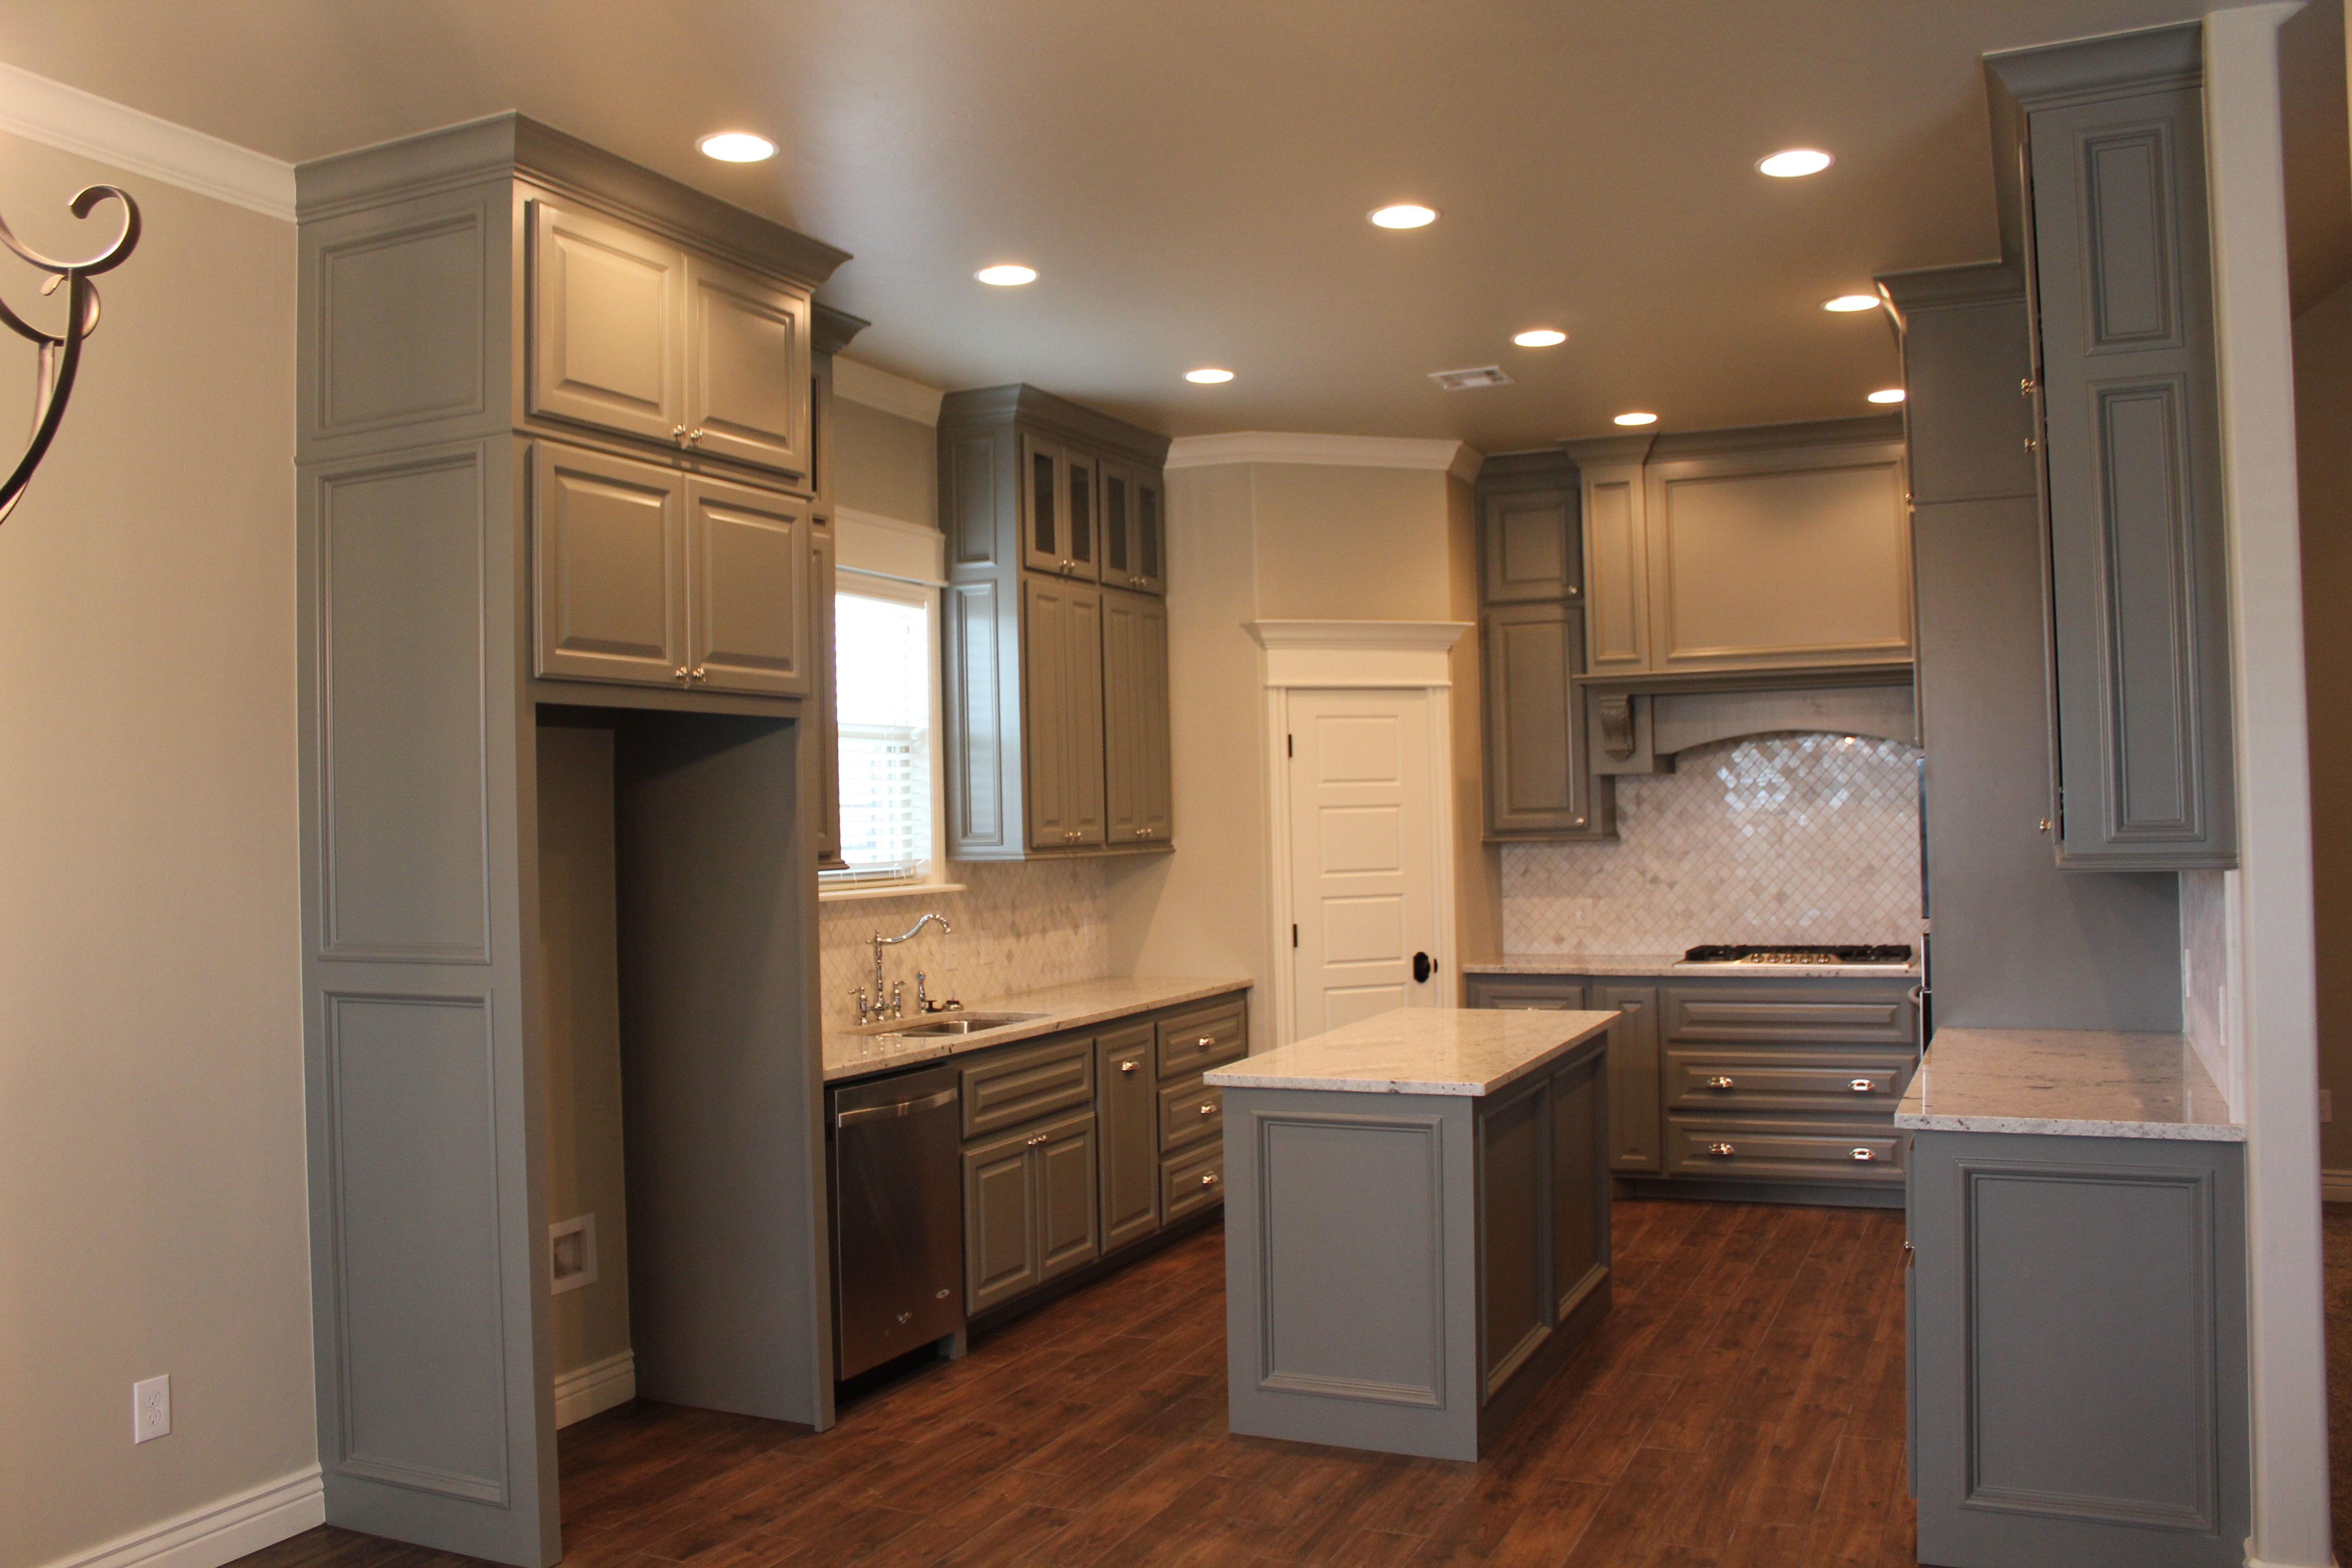 Bm Chelsea Gray Cabinets Sw Accessible Beige Walls Sw Alabaster